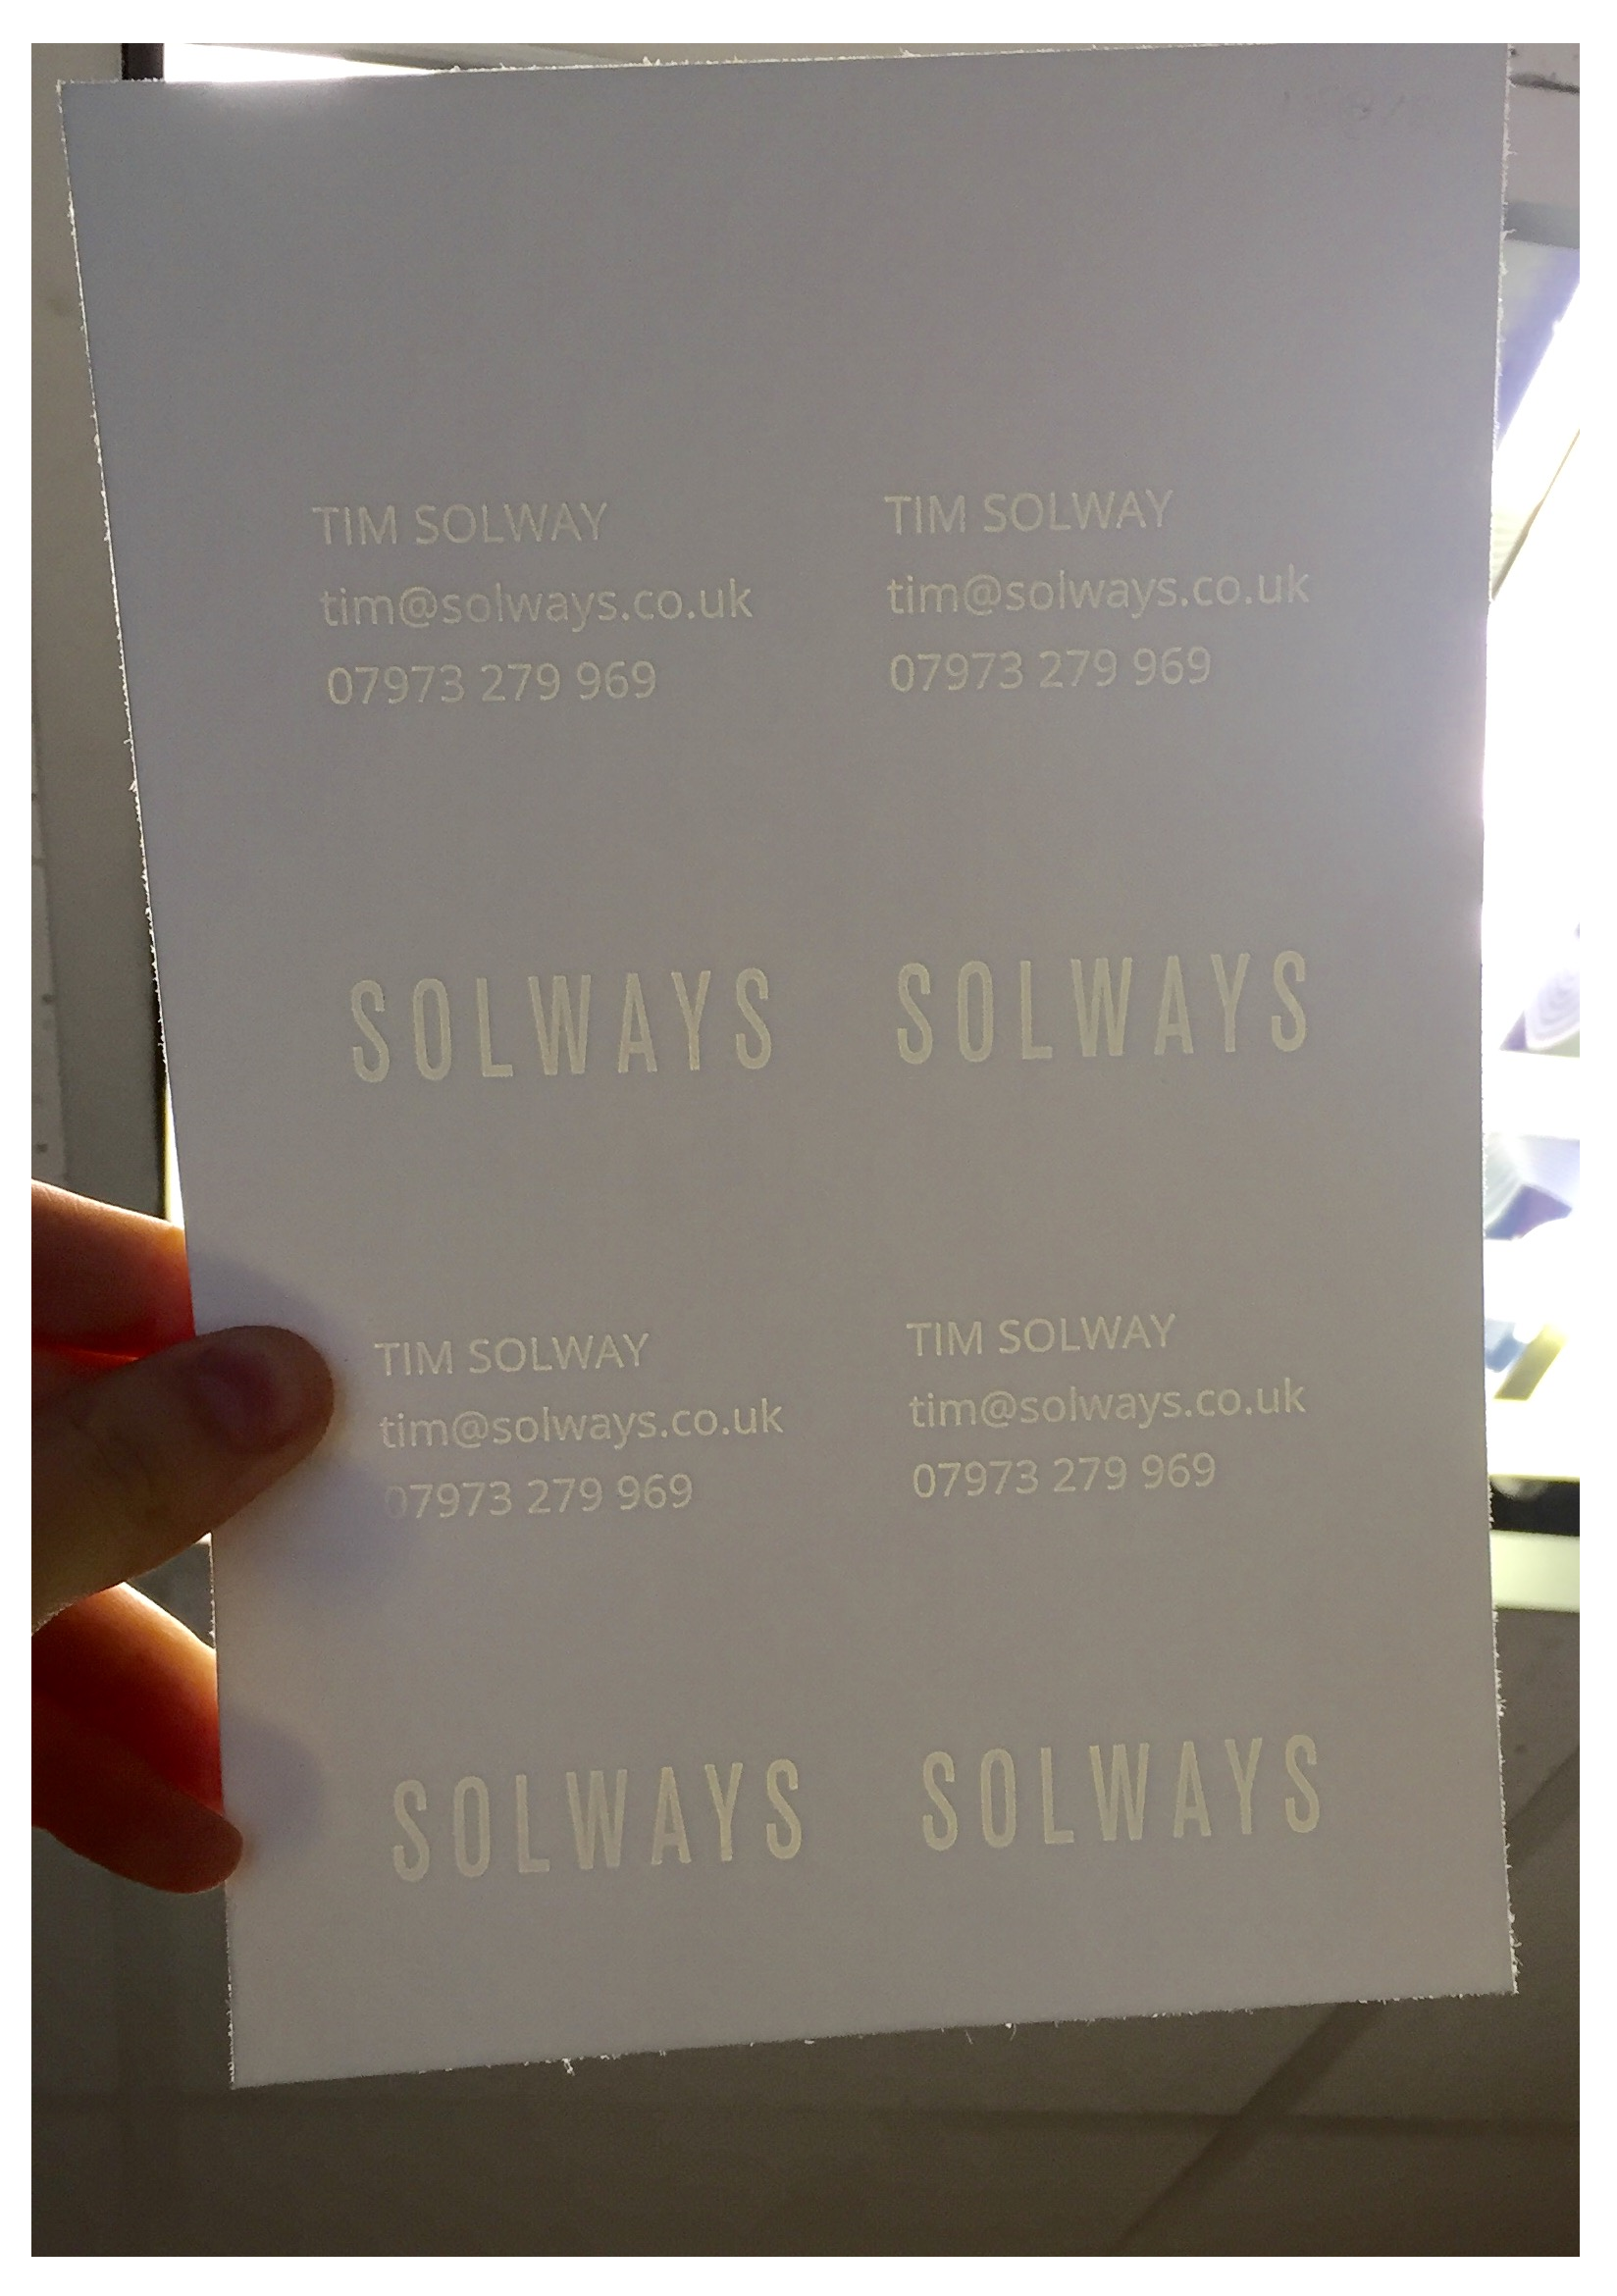 Luxury bespoke thick watermarked business cards solways quality luxury bespoke thick watermarked business cards solways quality printing london reheart Choice Image